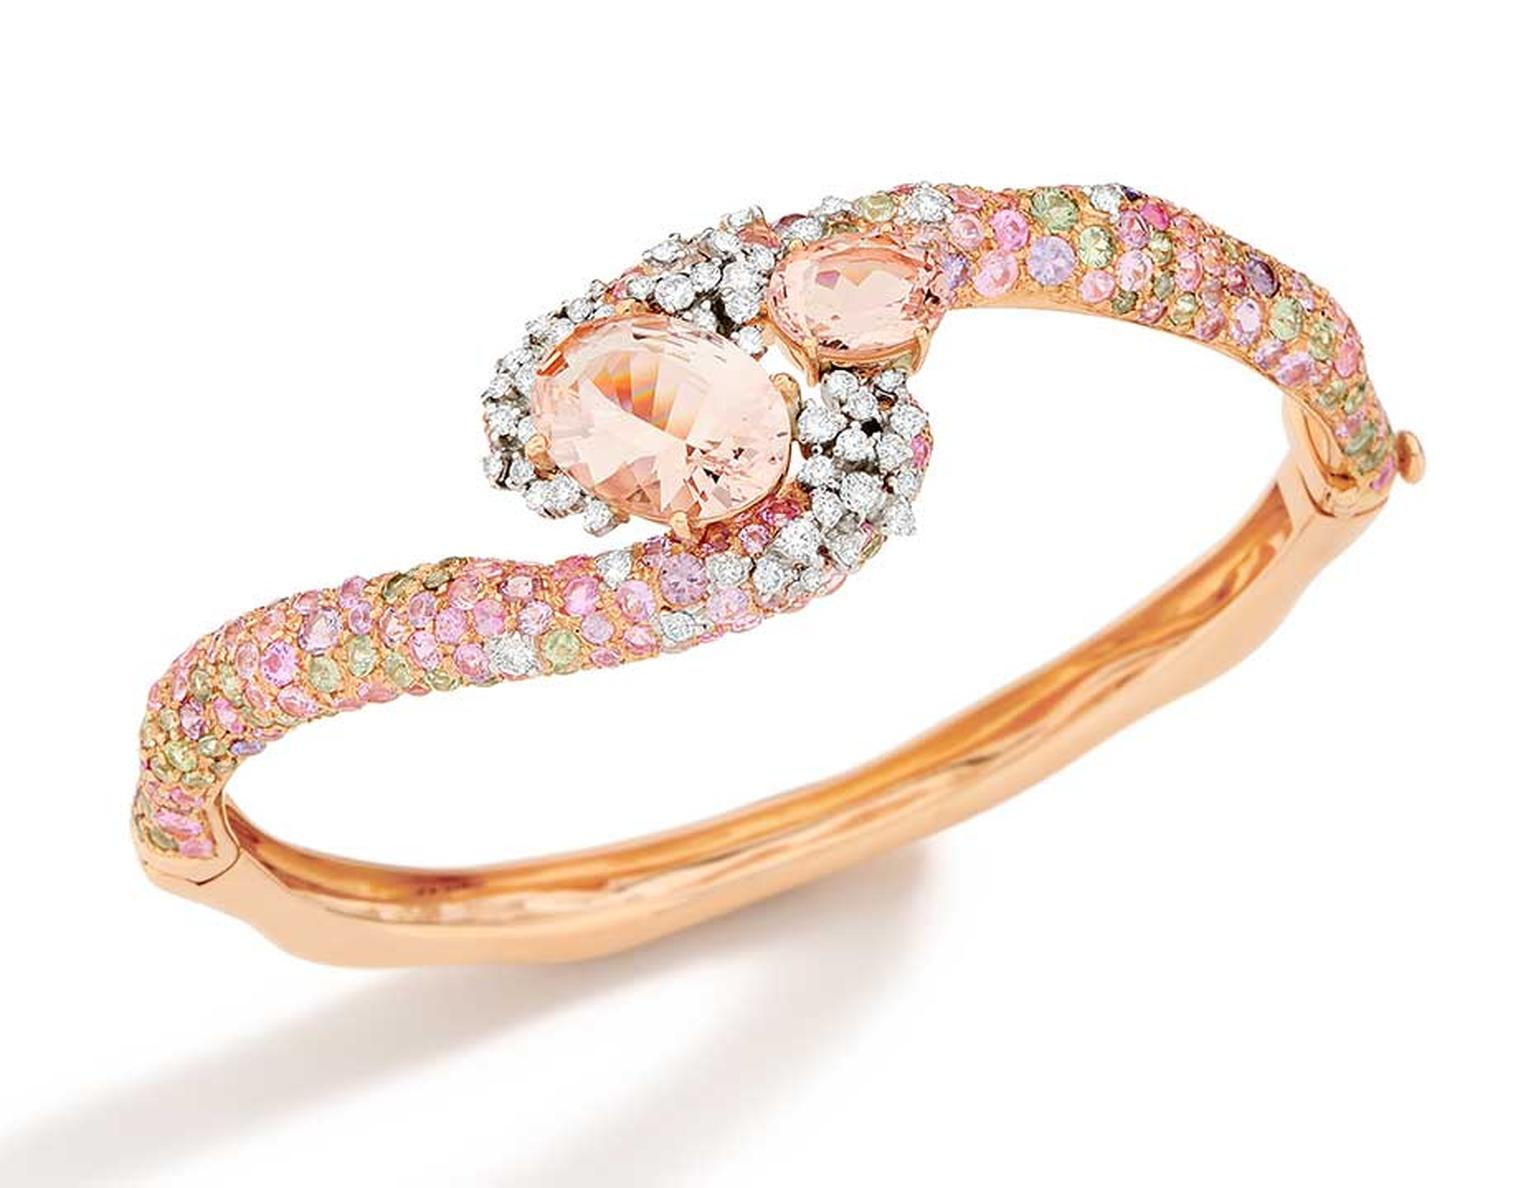 Brumani Panache collection white and rose gold bracelet with white and brown diamonds, morganite and multi-coloured sapphires